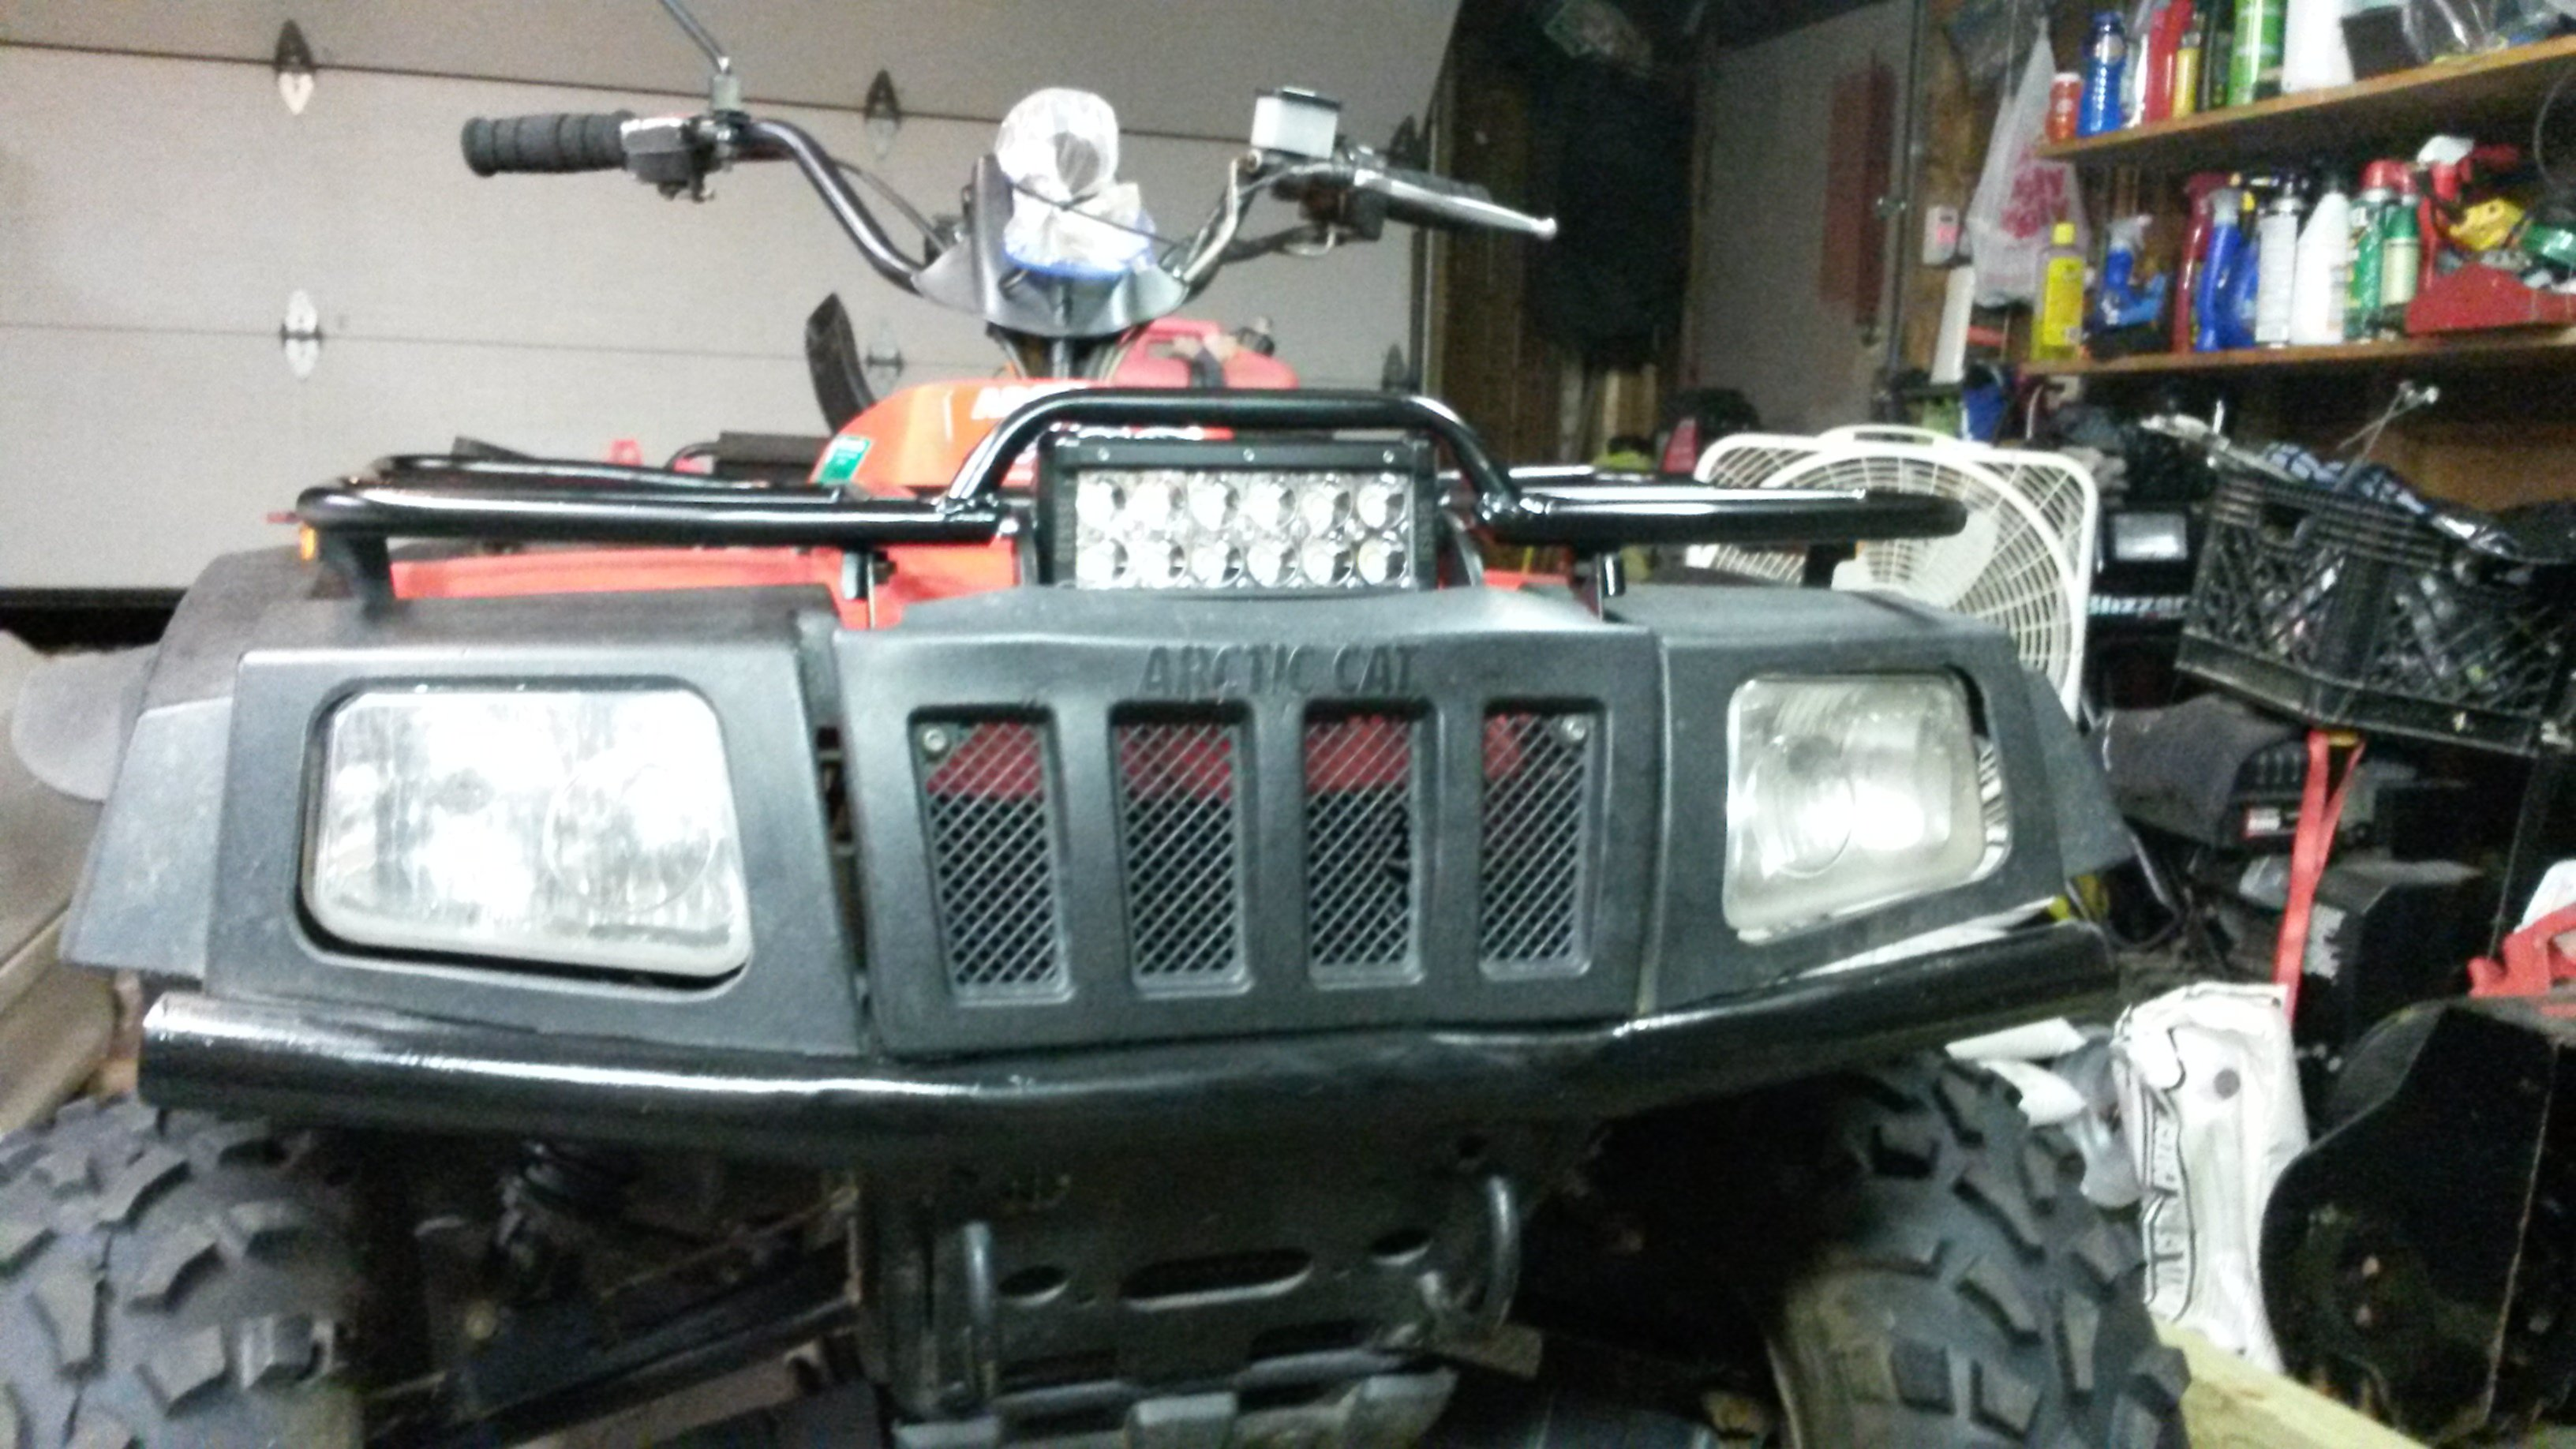 What size led light bar clamp a for front rack arcticchat click image for larger version name 20140807223758g views 3681 size 157 mozeypictures Gallery